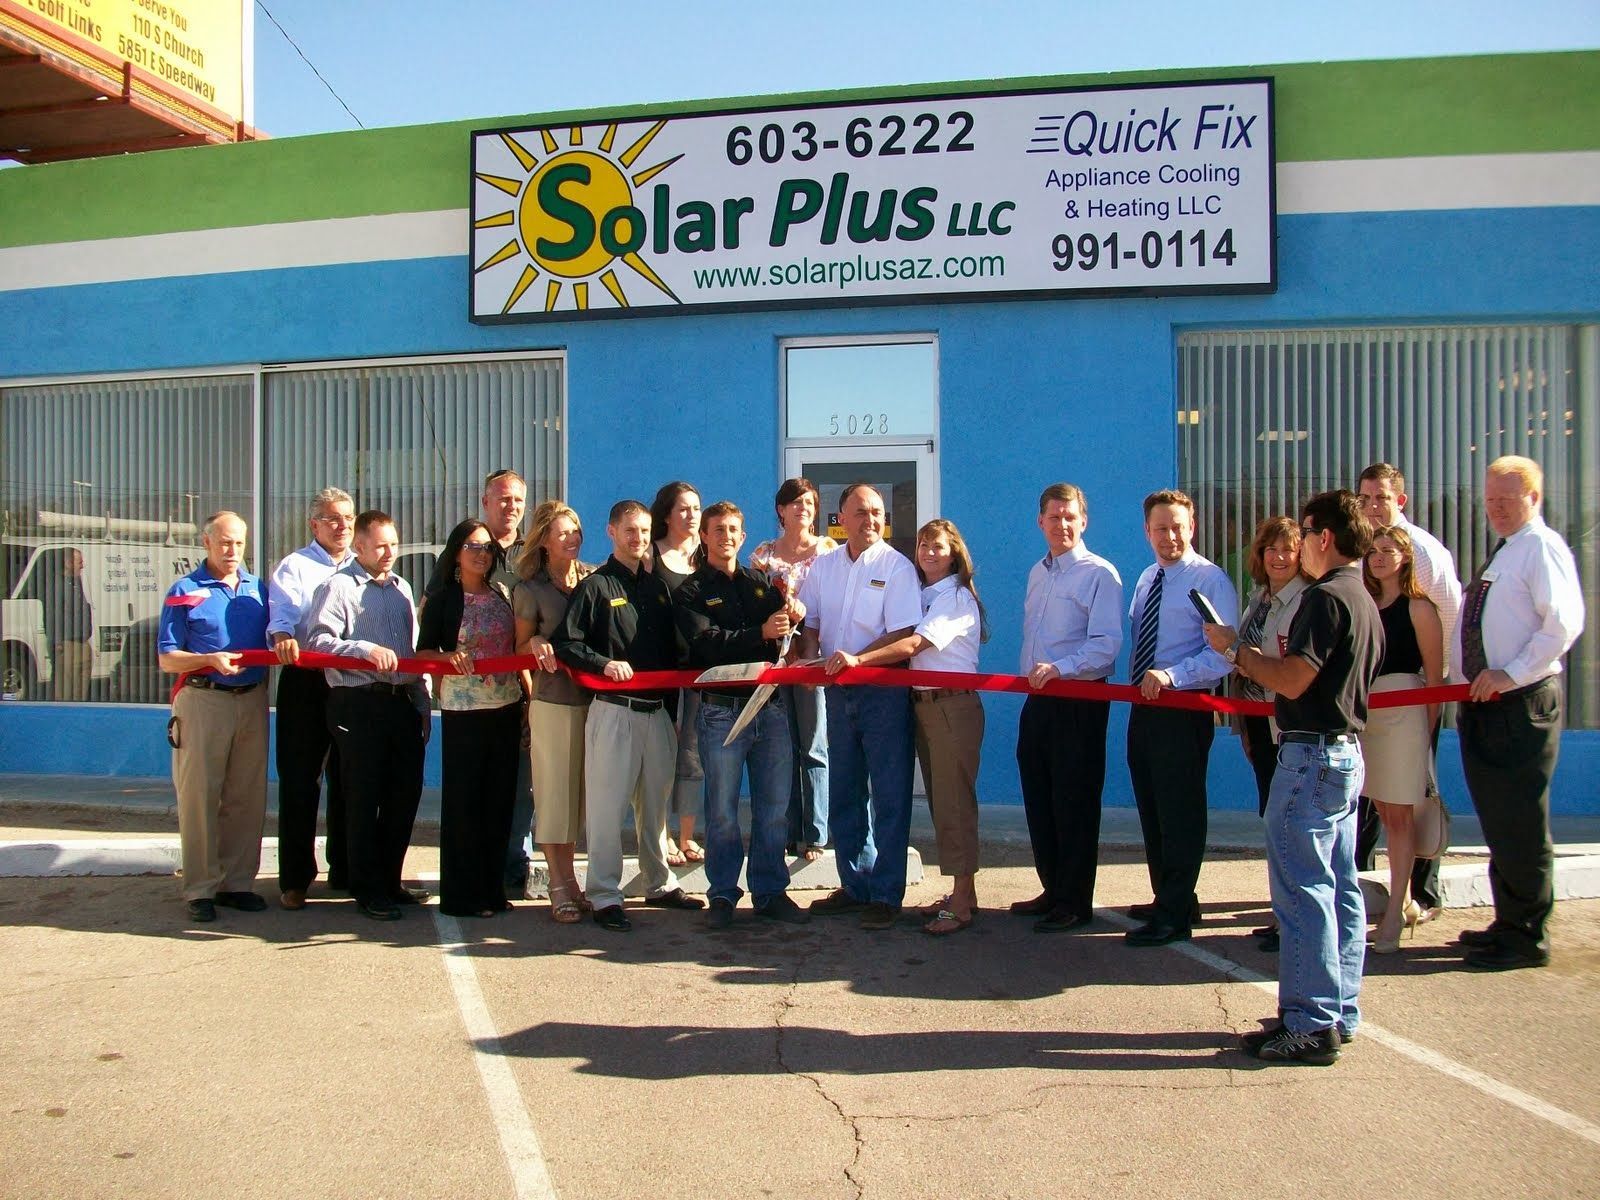 Solar Plus, LLC relocates to 5028 E. 22nd street, opening the largest showroom in the Southwest.  As an experienced solar installer, Solar Plus can handle all of the details of the project for you from the initial site visit to the final inspection.